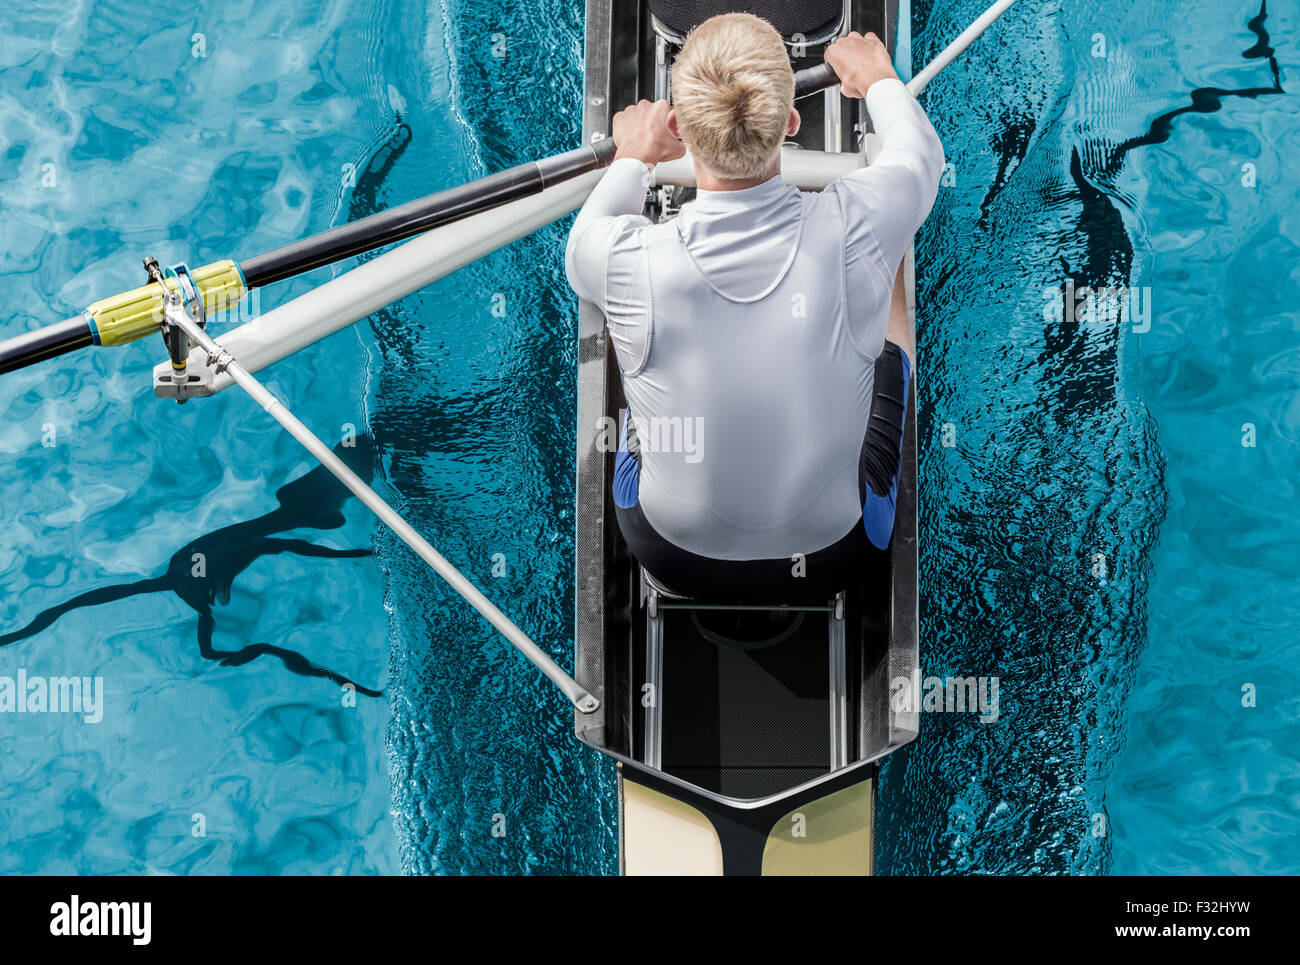 Top view of athletic competition rower, who strokes his  paddle through metallic blue water. - Stock Image